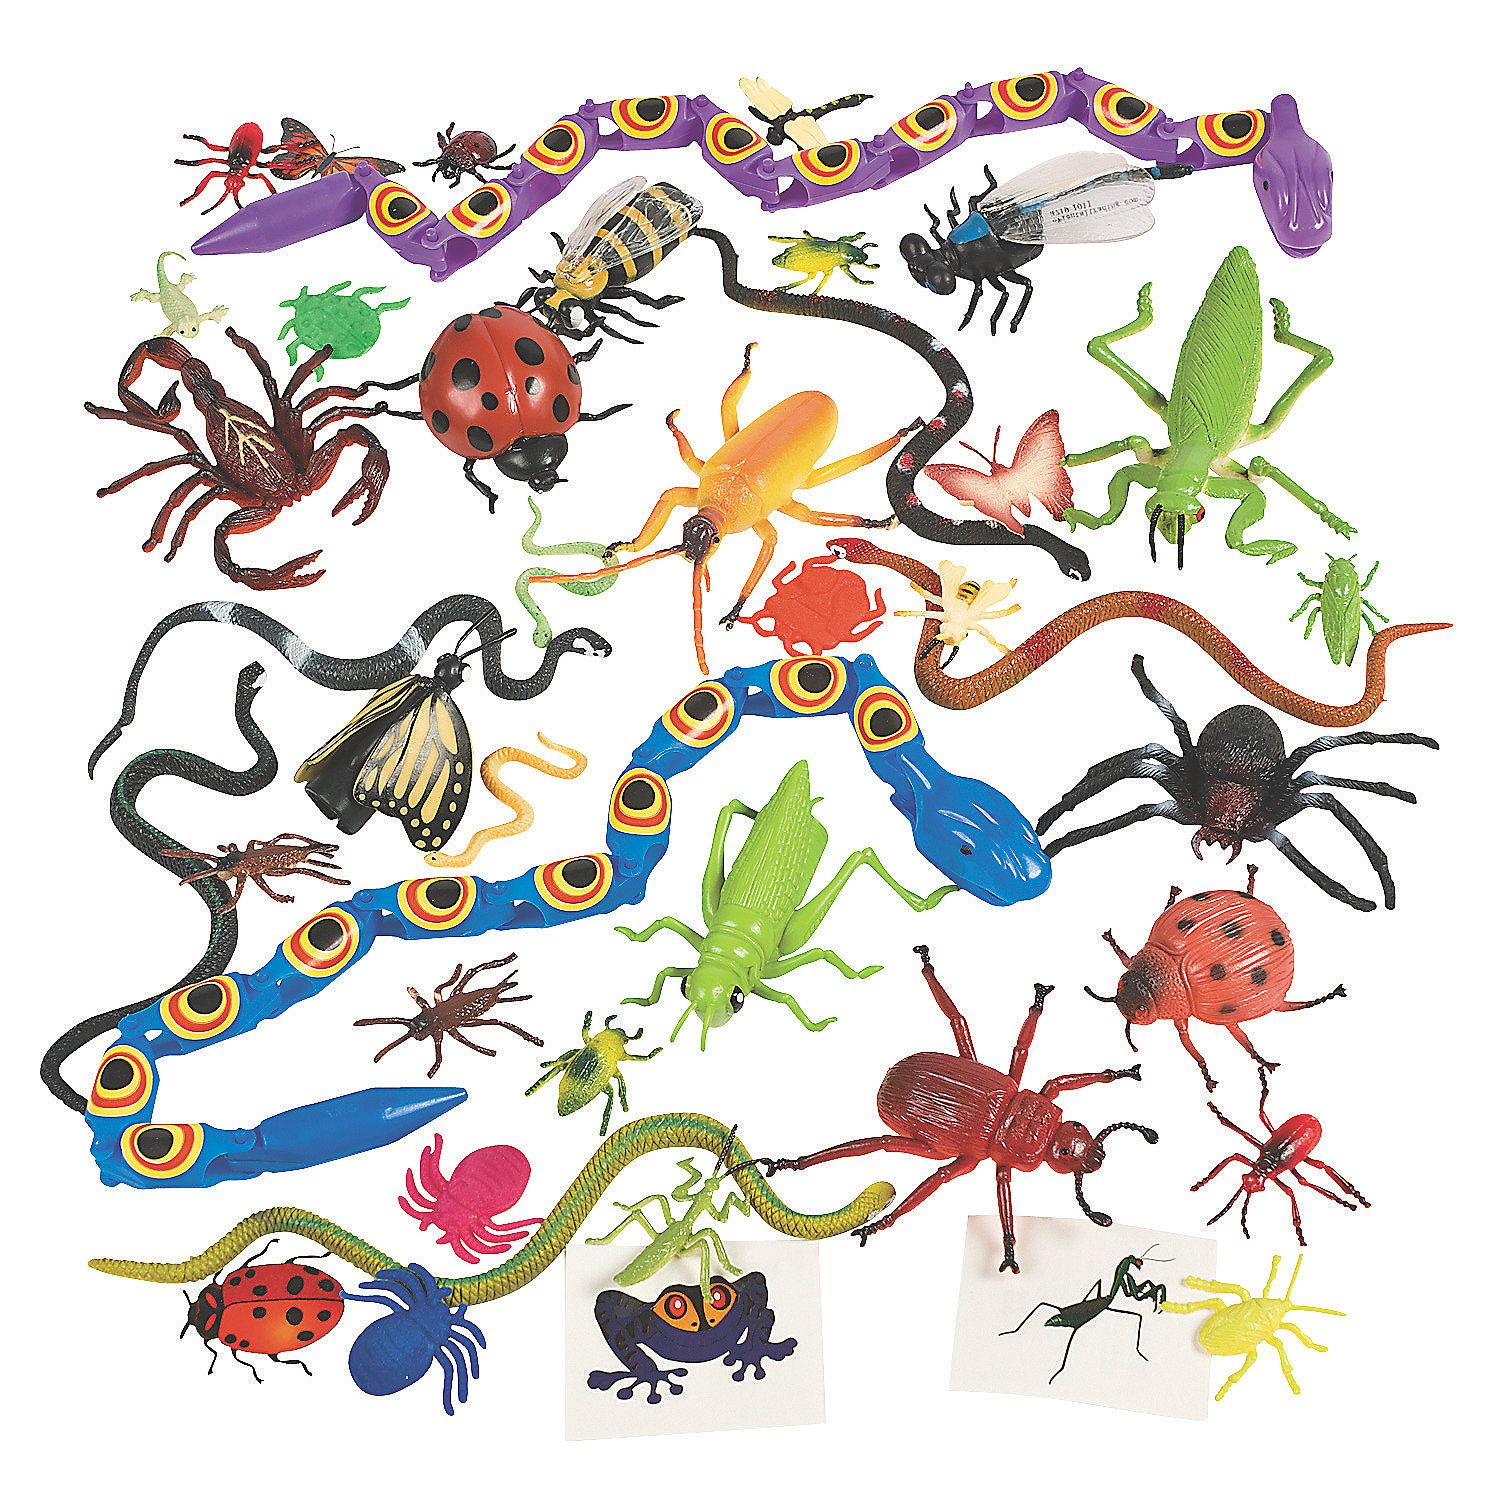 Creepy Crawly Insect Toy Assortment Insects, Creepy and Toy